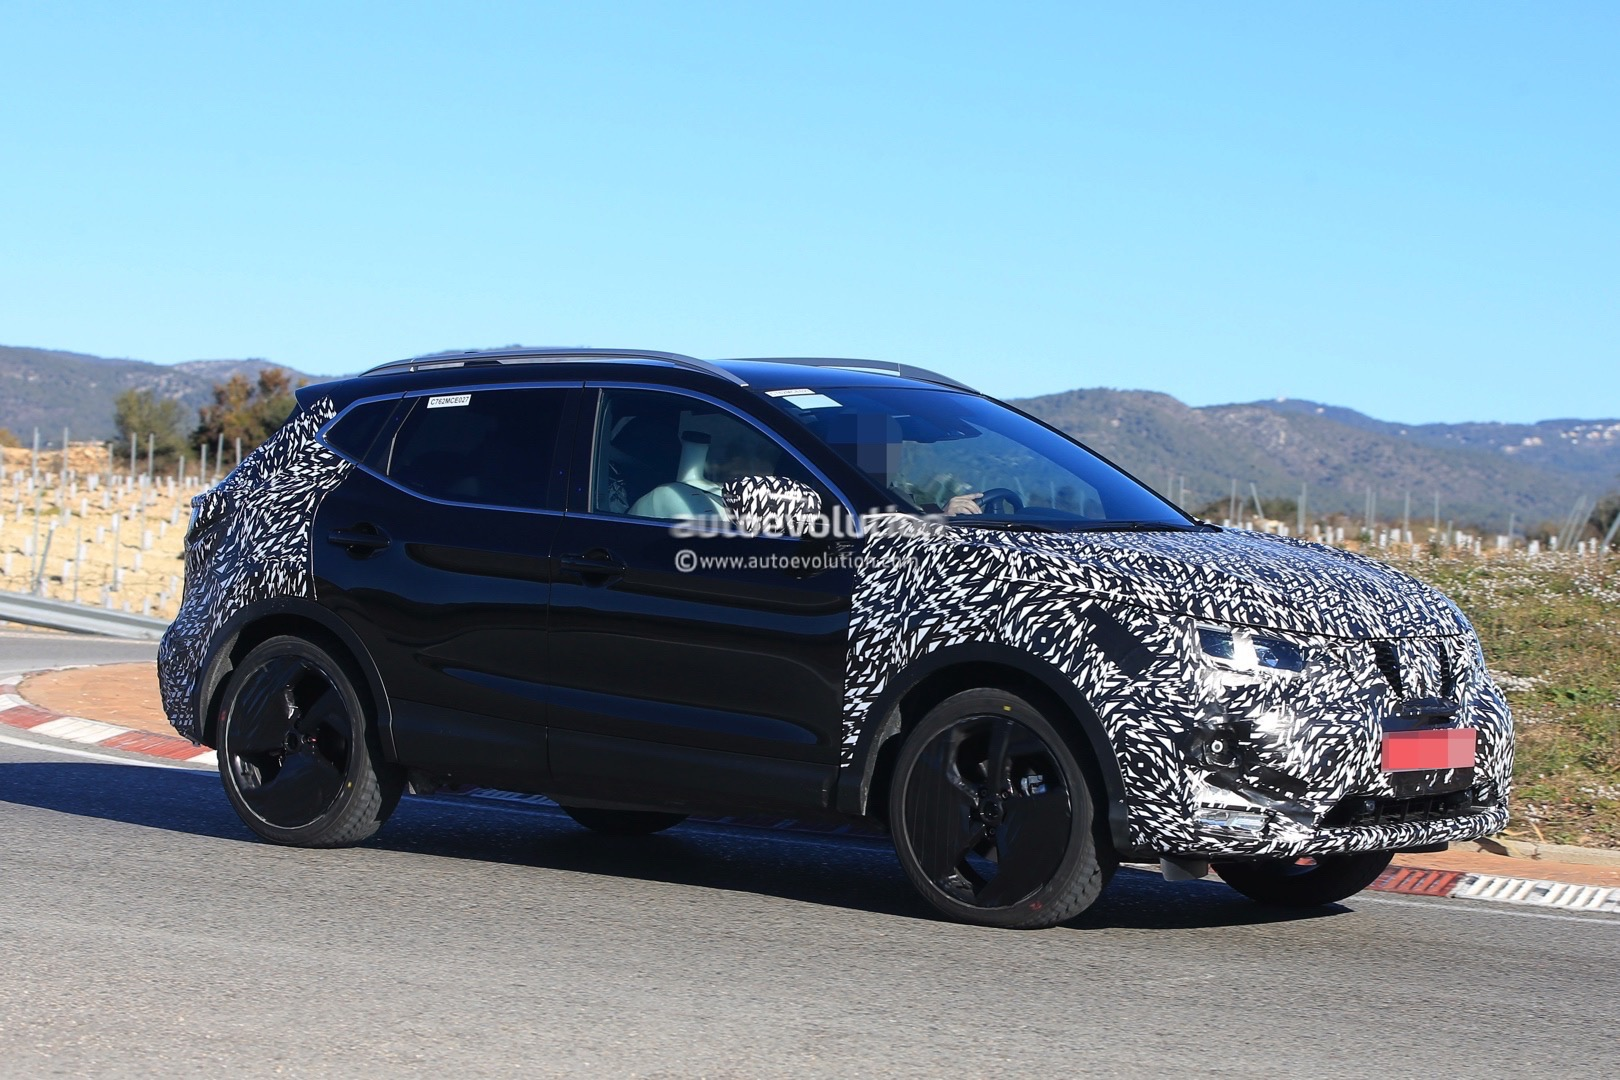 2018 nissan qashqai facelift spied for the first time has concept car wheels autoevolution. Black Bedroom Furniture Sets. Home Design Ideas